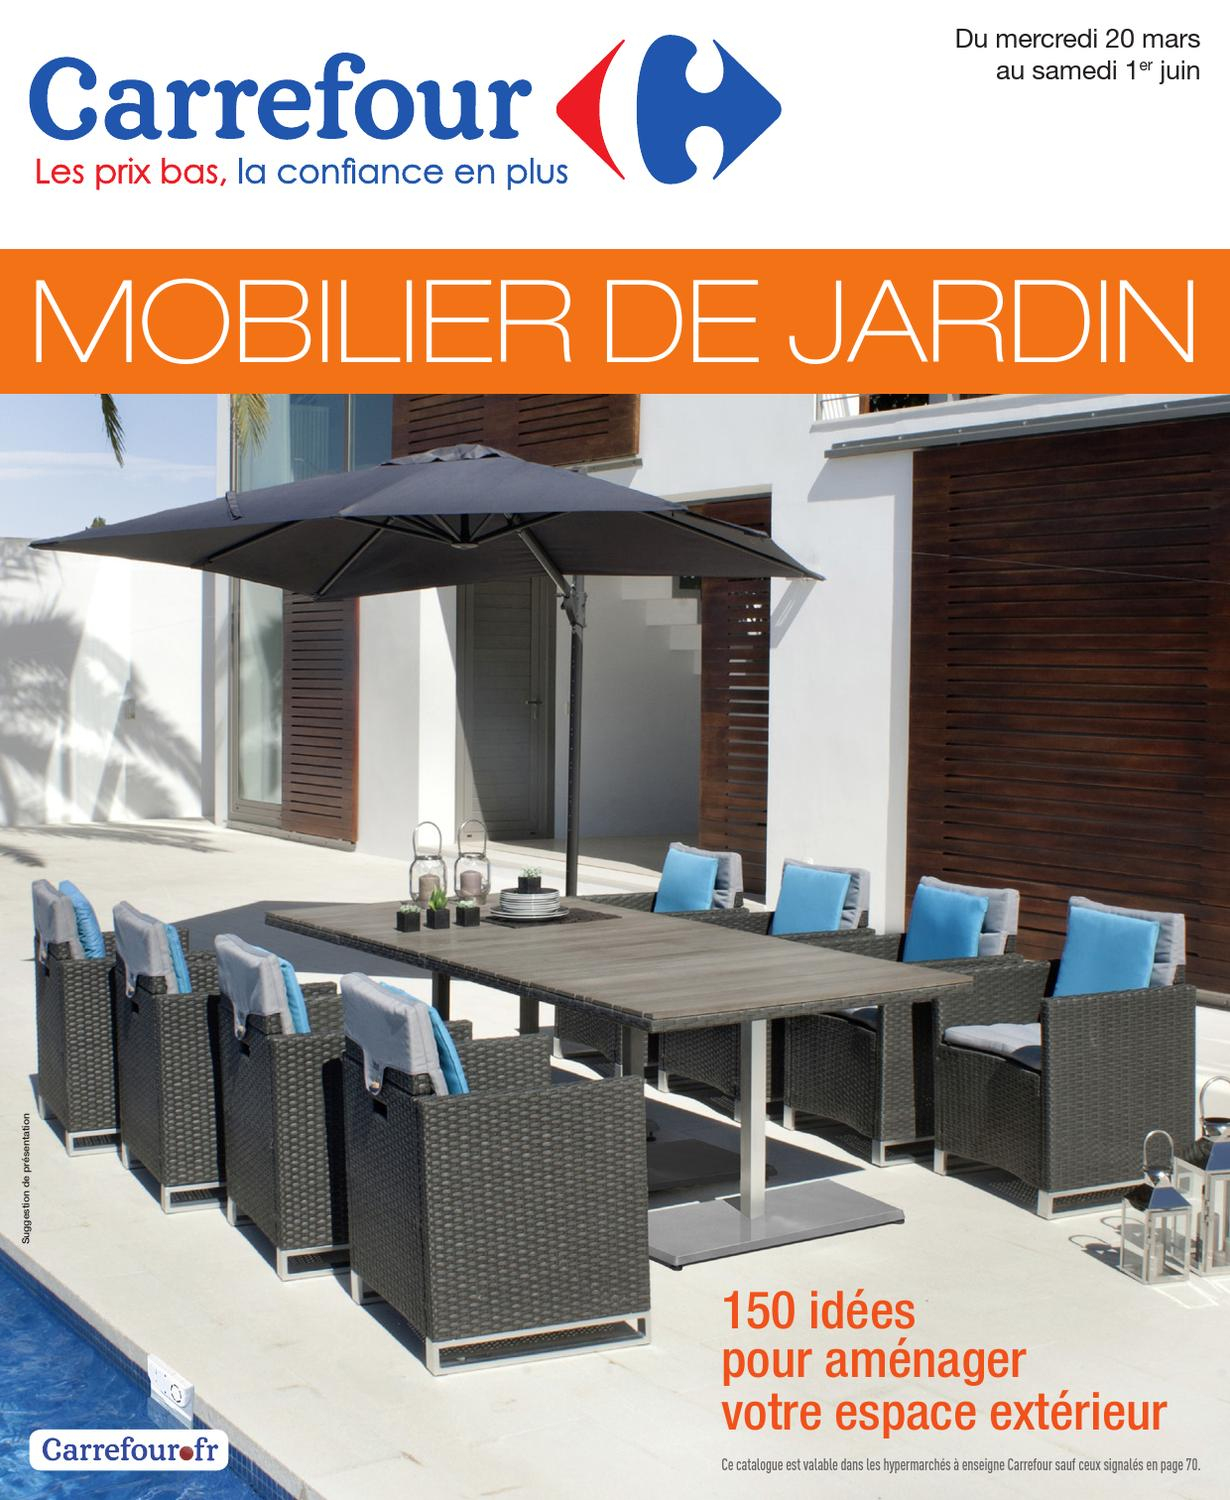 Carrefour_20.3-1.6-2013 By Proomo France - Issuu dedans Tonnelle De Jardin Carrefour